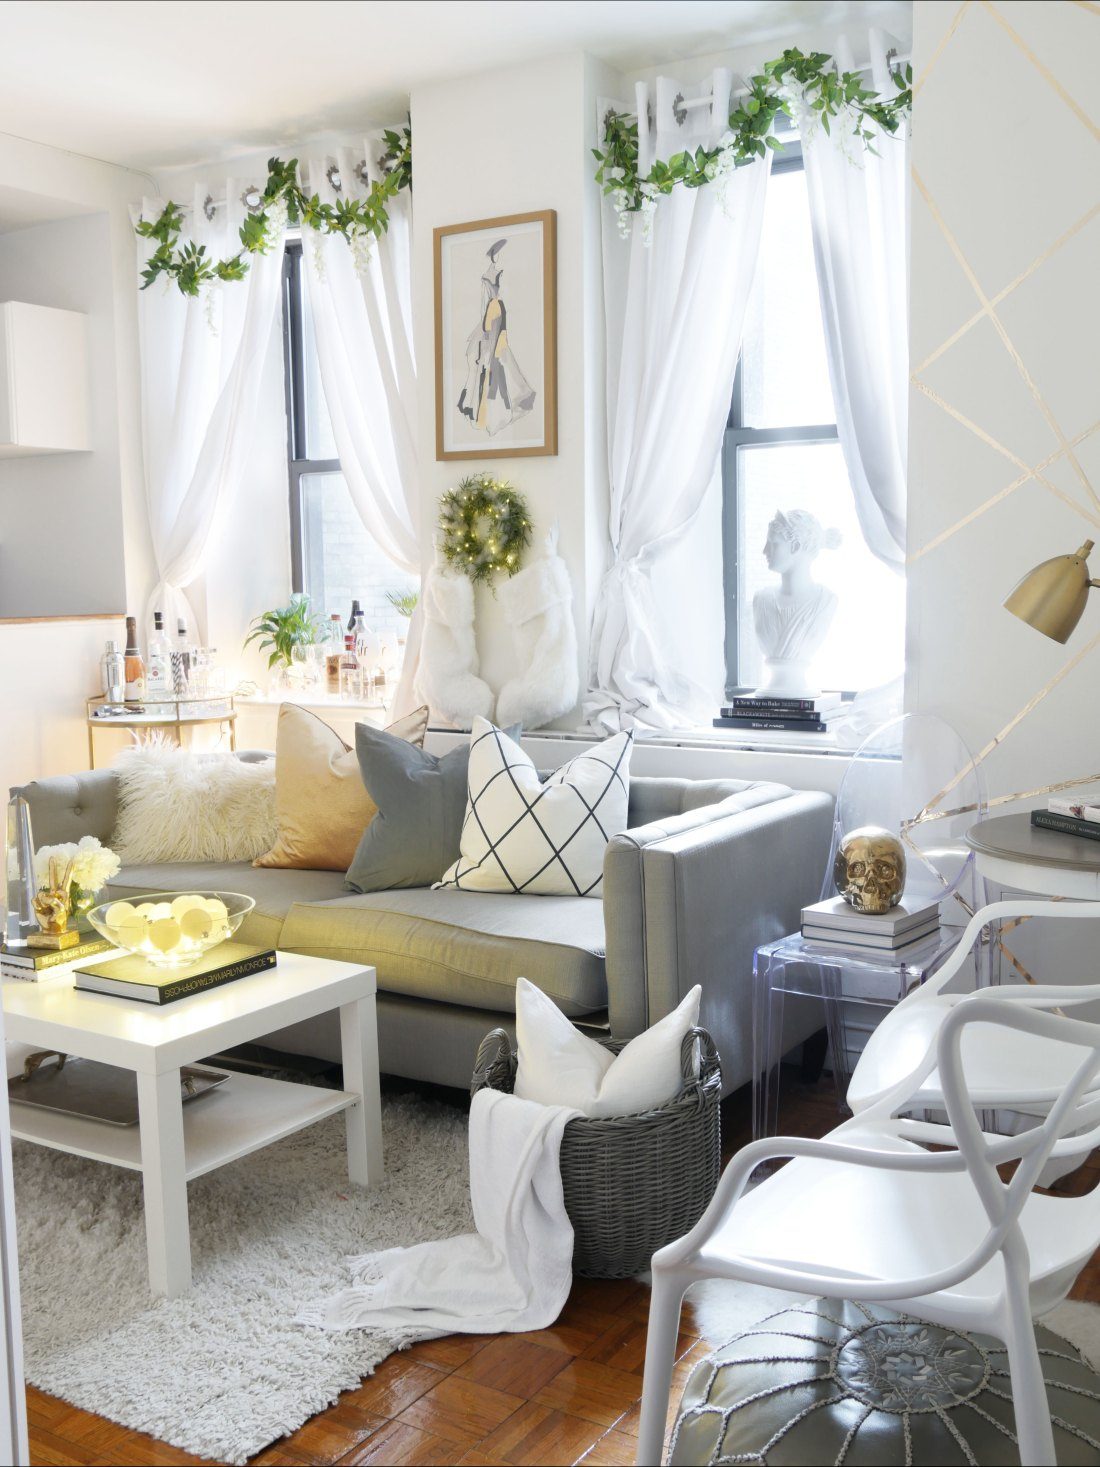 Decorating for the Holidays in a Small Space - City Chic Decor